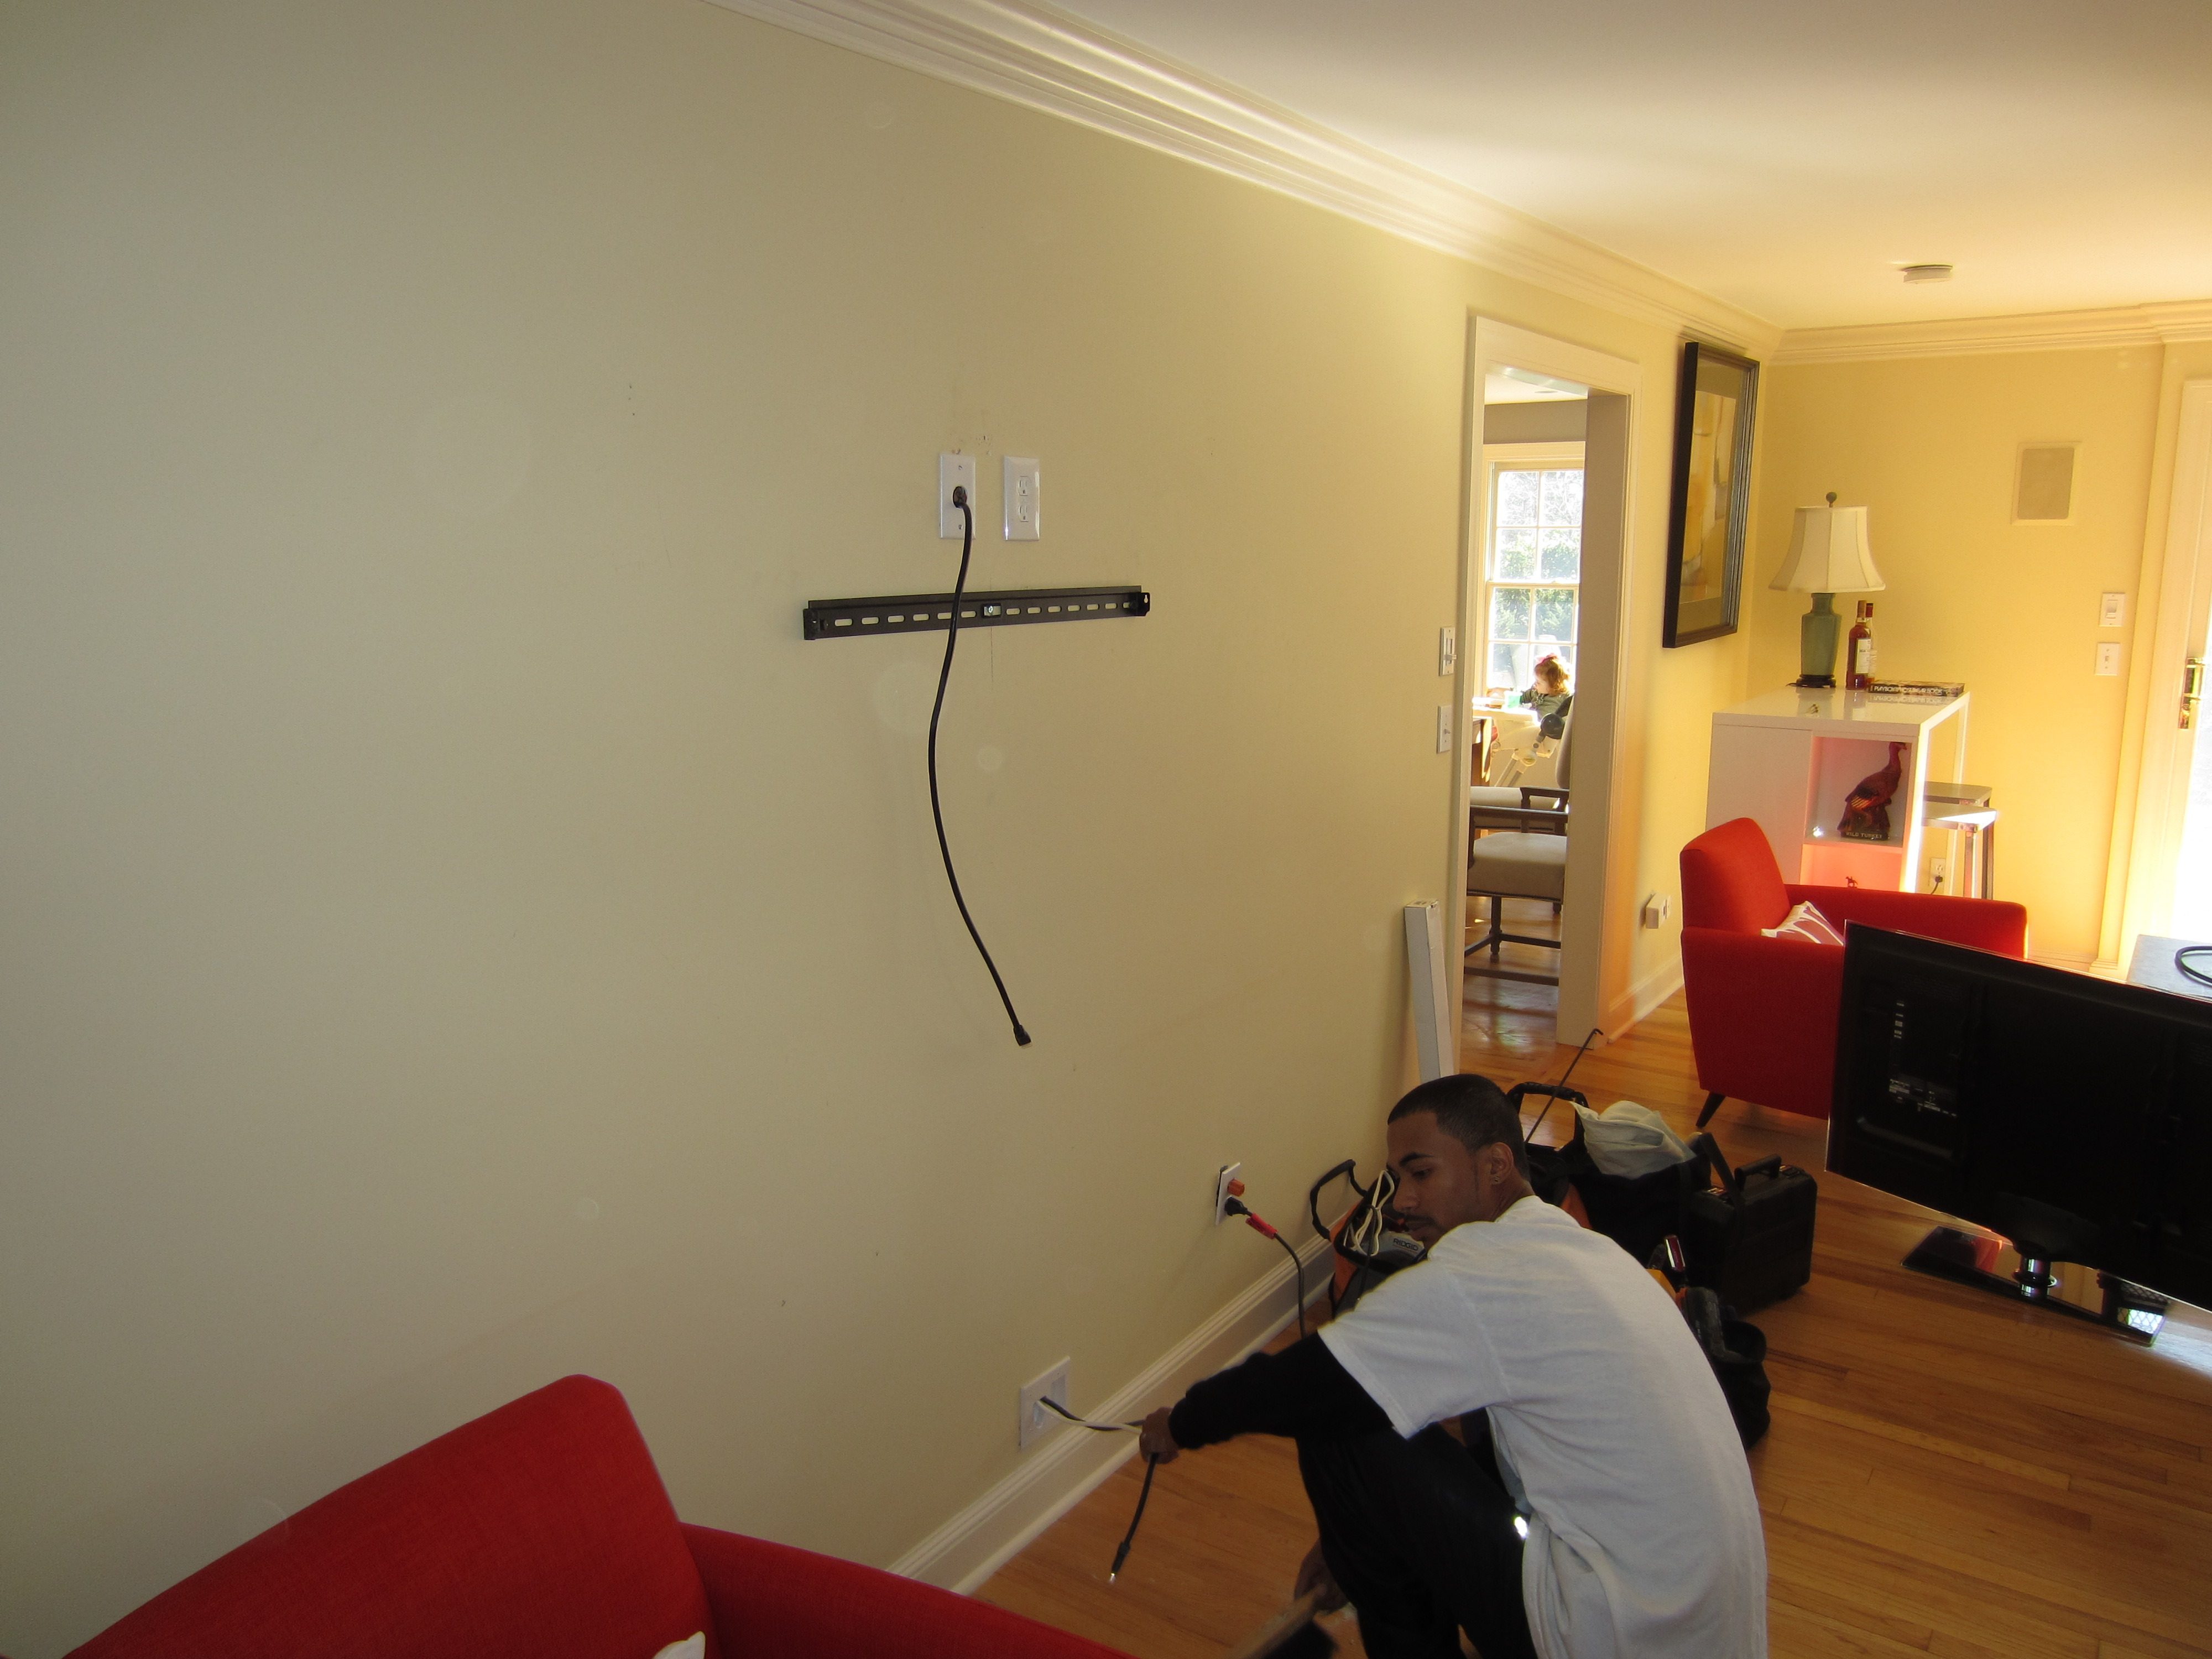 How To Put A Tv On A Wall Newington Ct Mount Tv On Wall Home Theater Installation